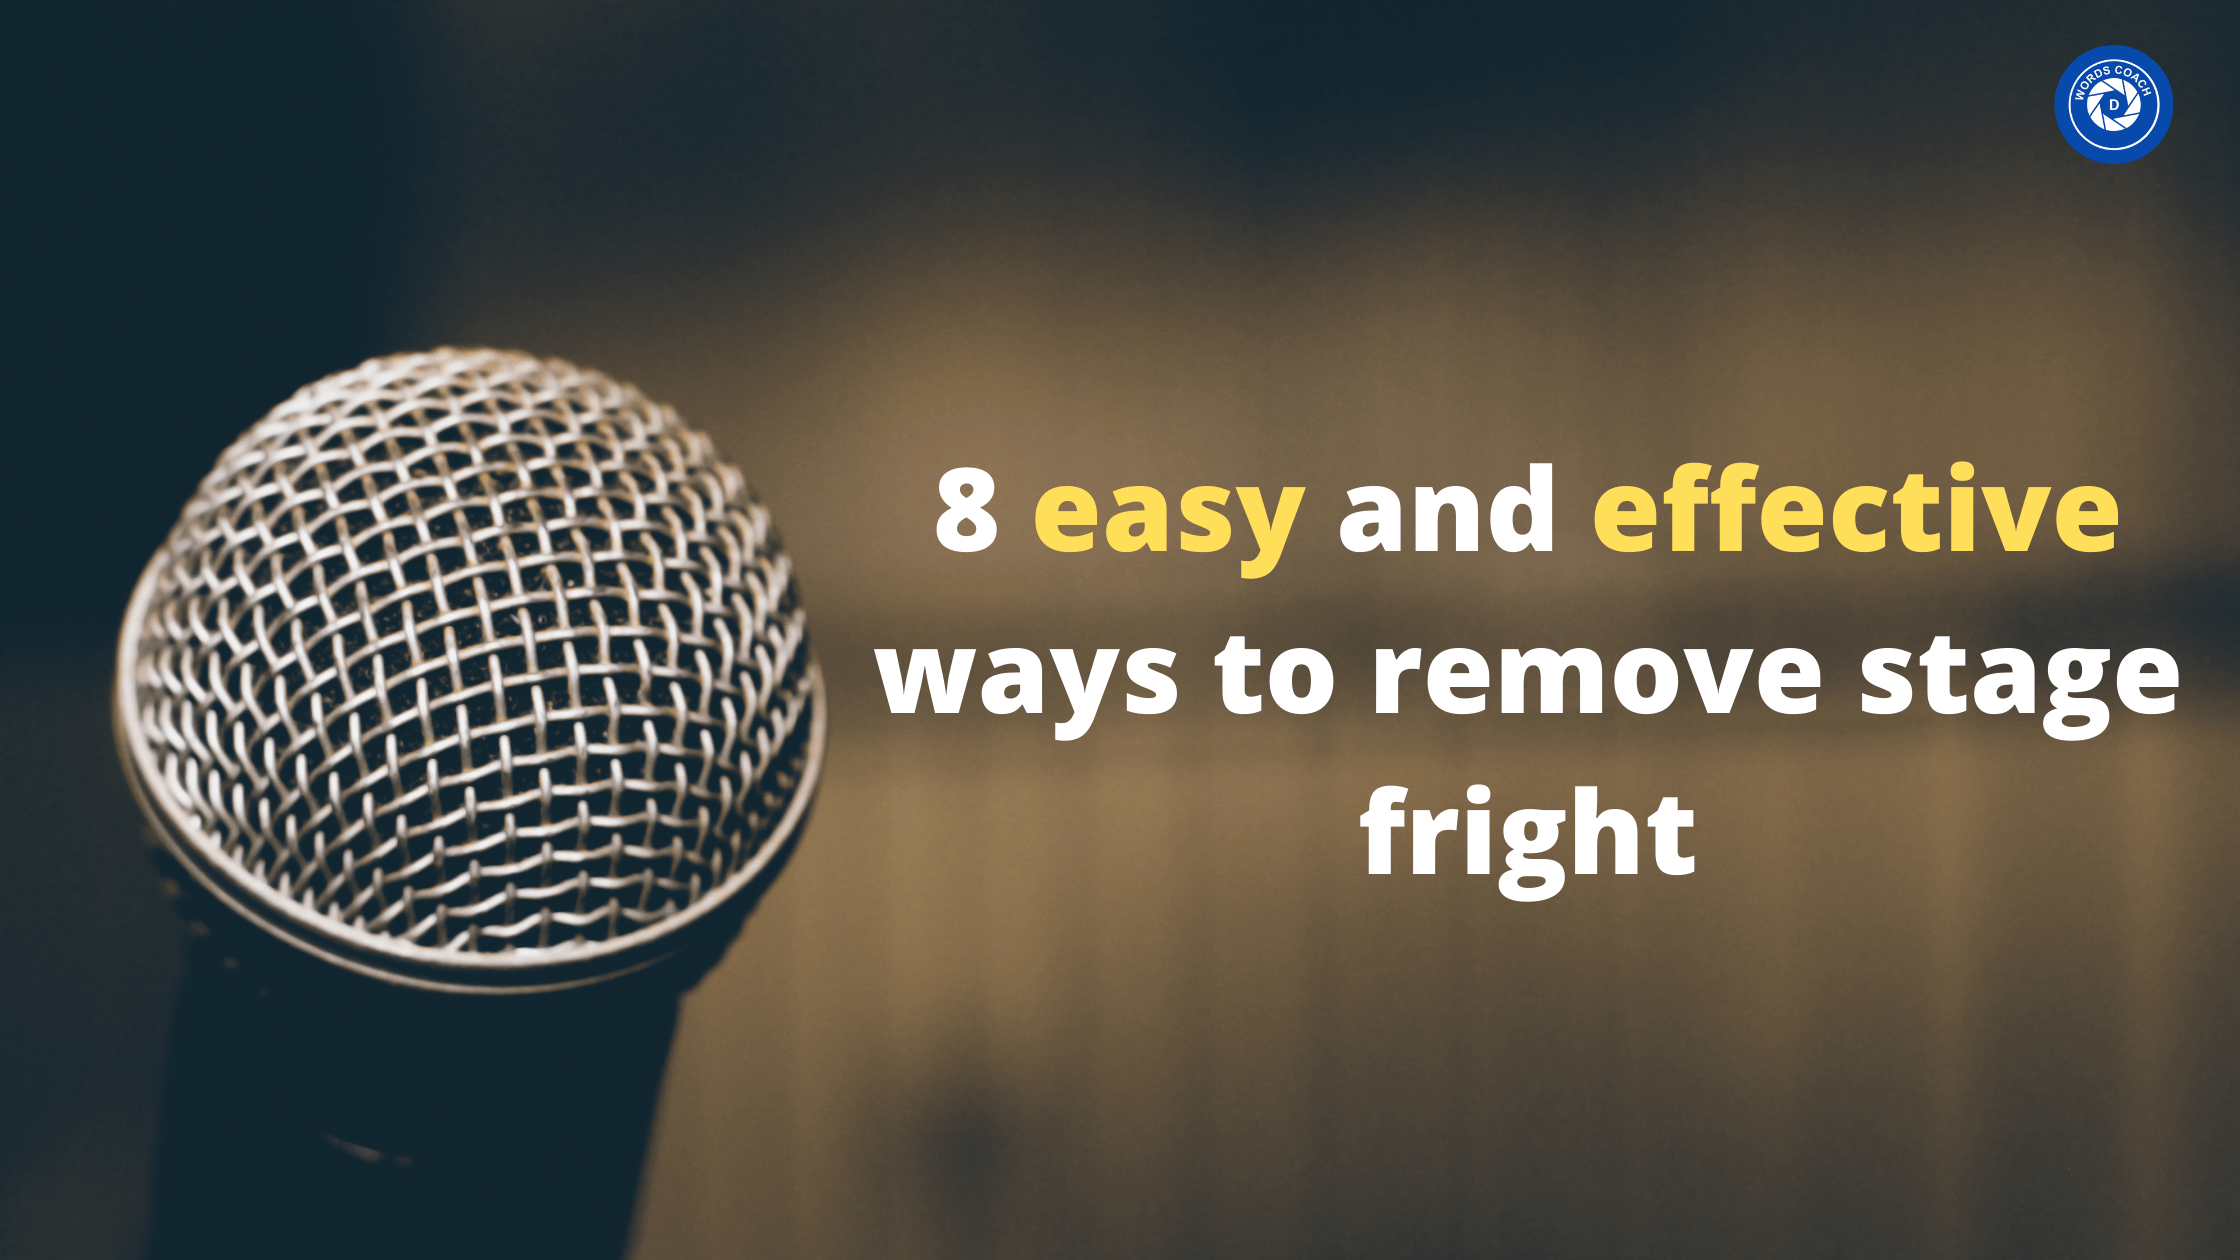 8 easy and effective ways to remove stage fright